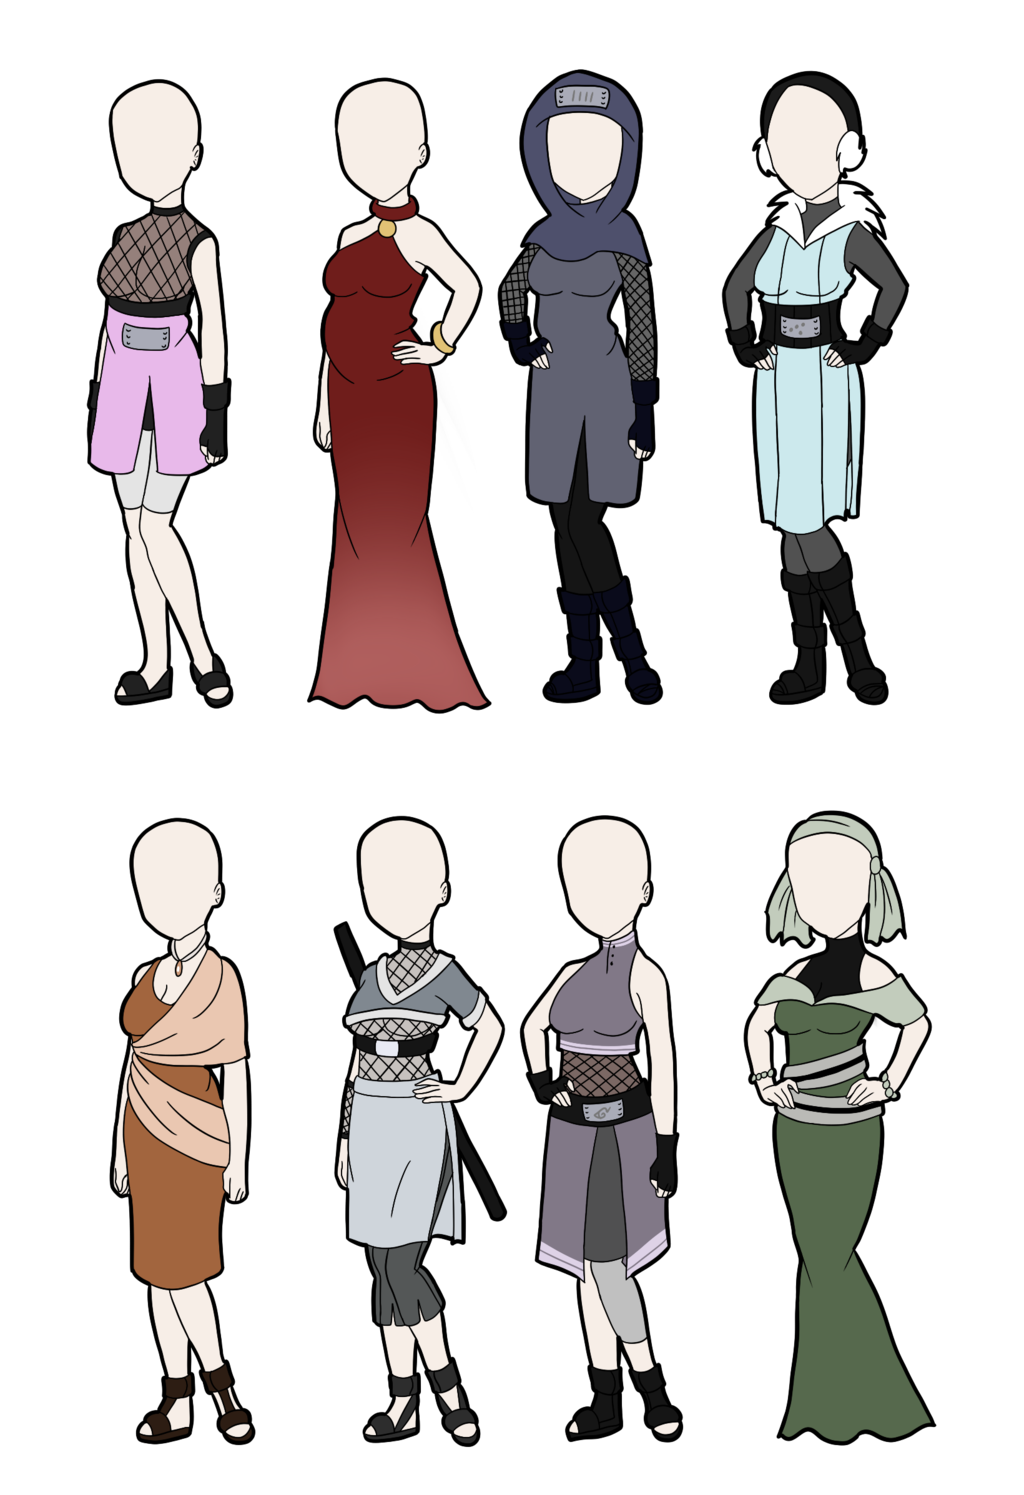 Humans clipart human character. Outfit adoptables left by